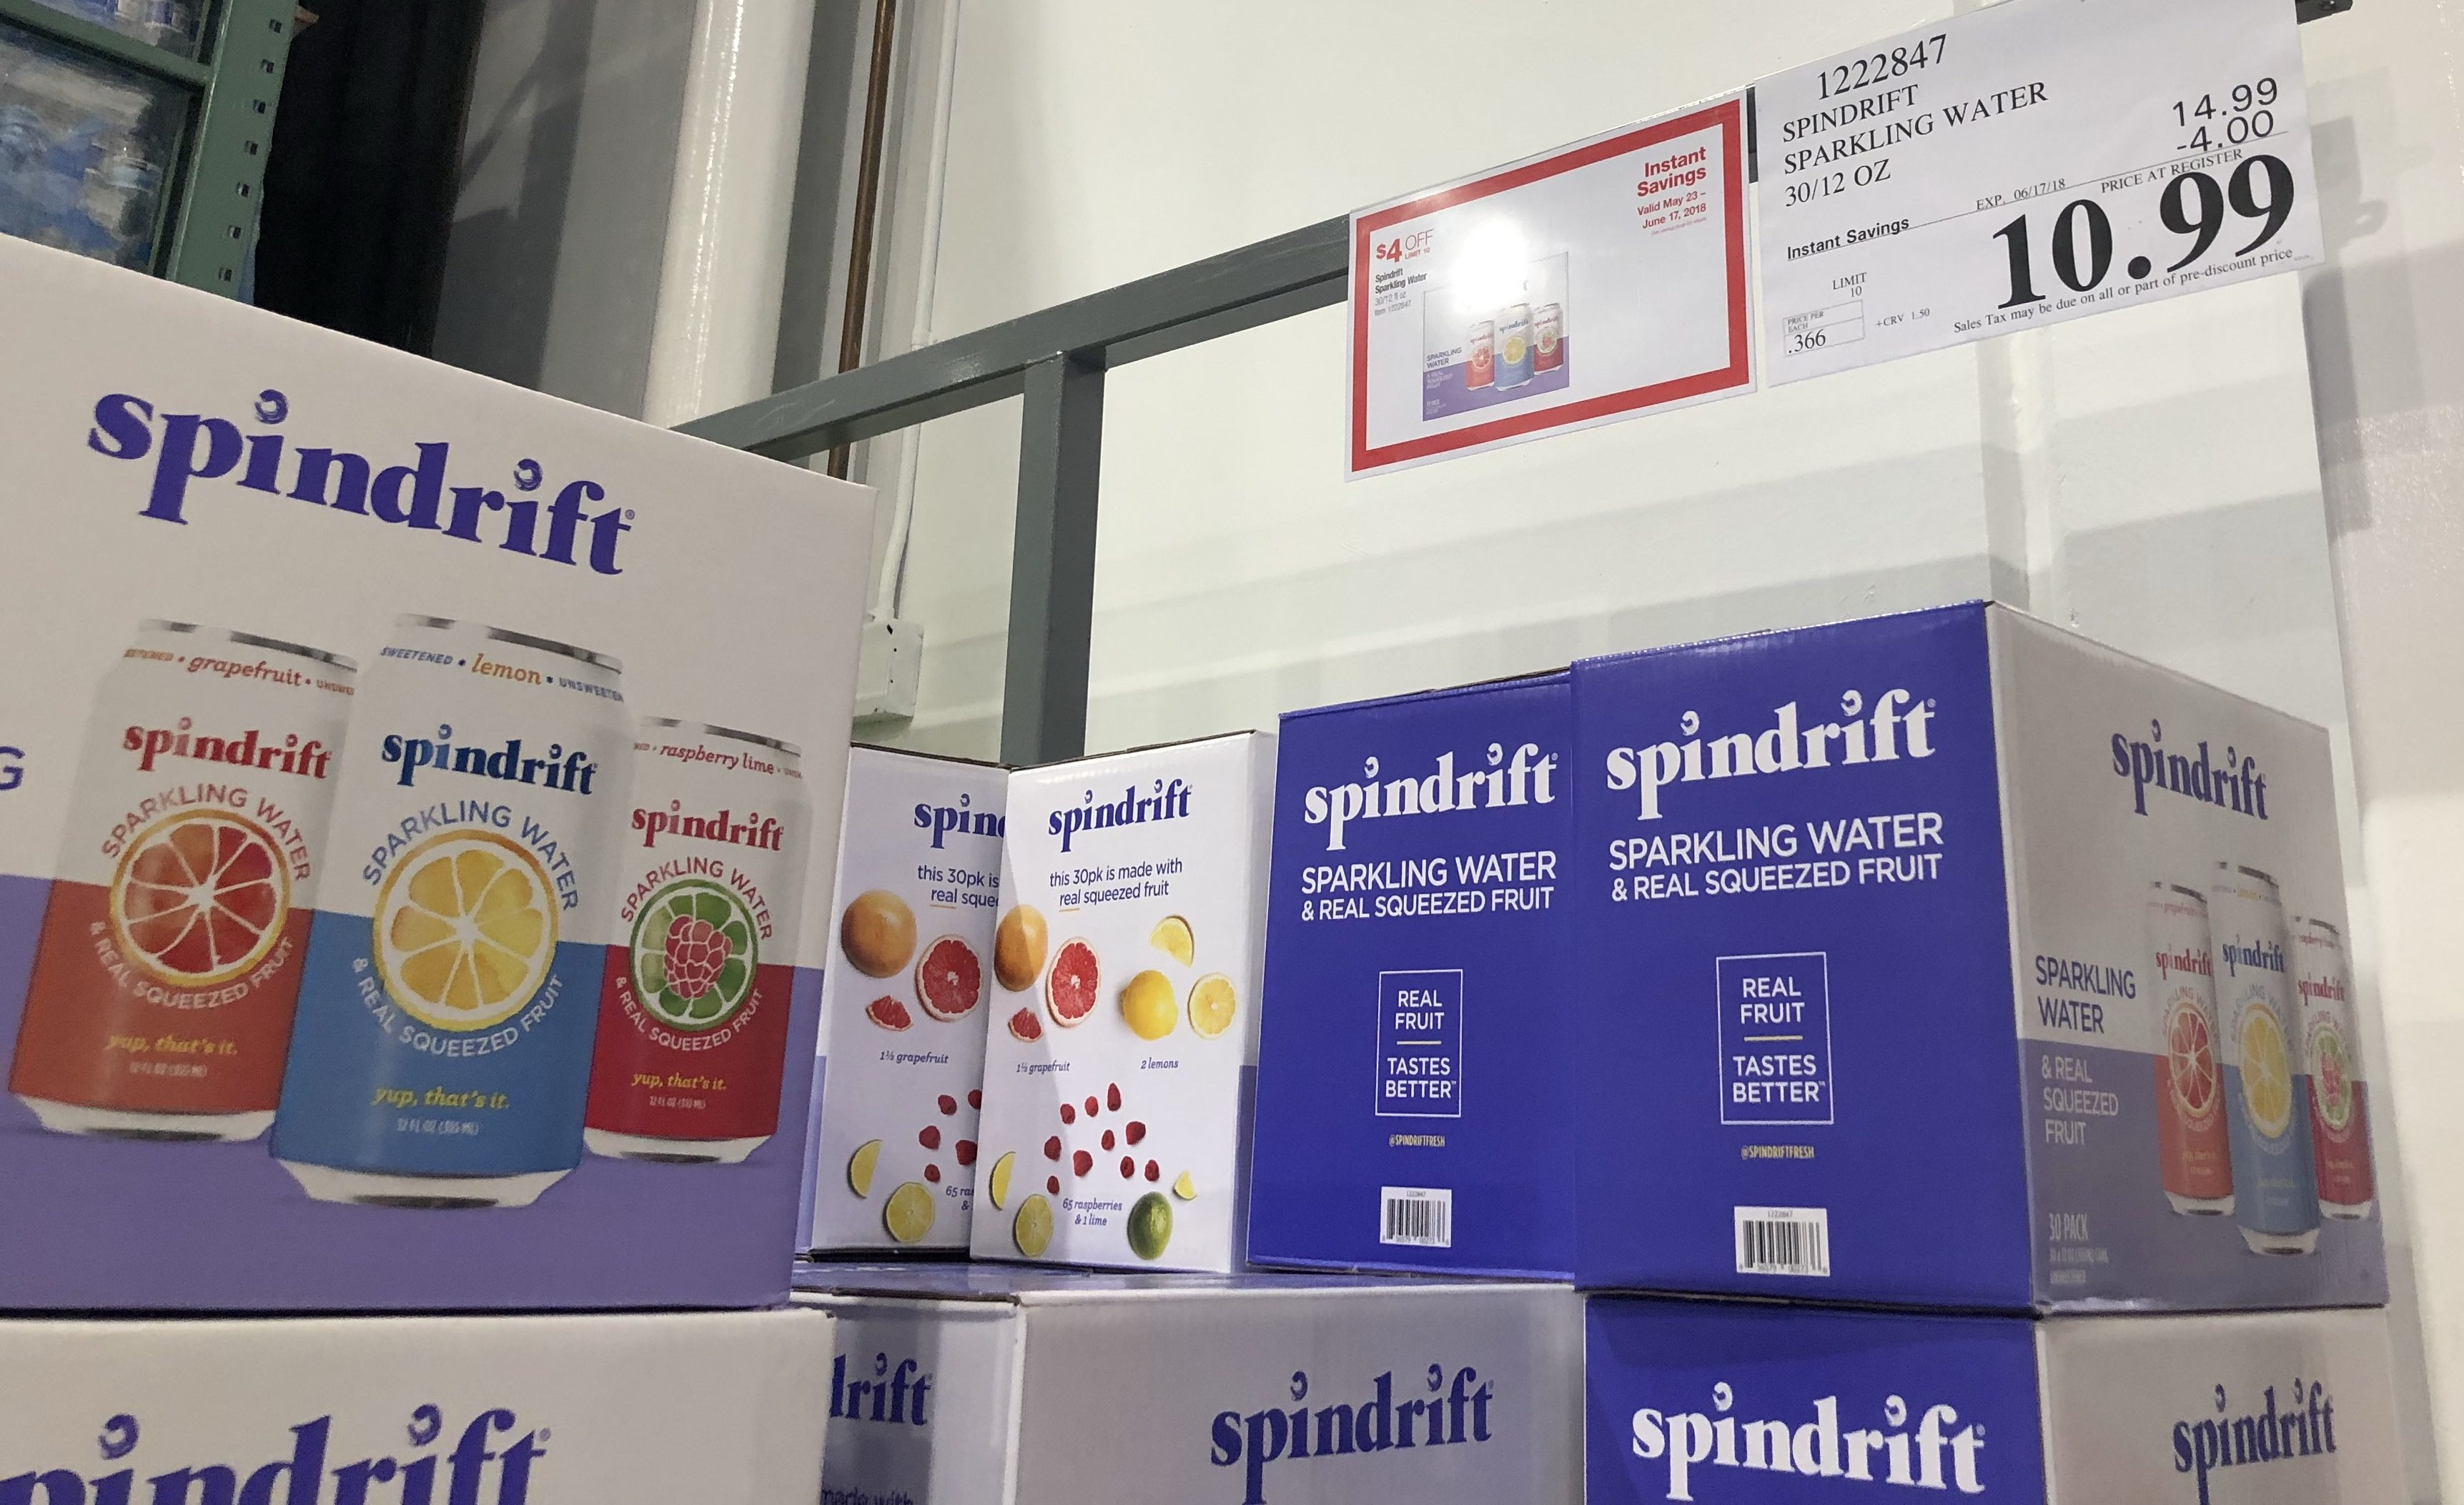 new costco instant savings deals – spindrift sparkling water